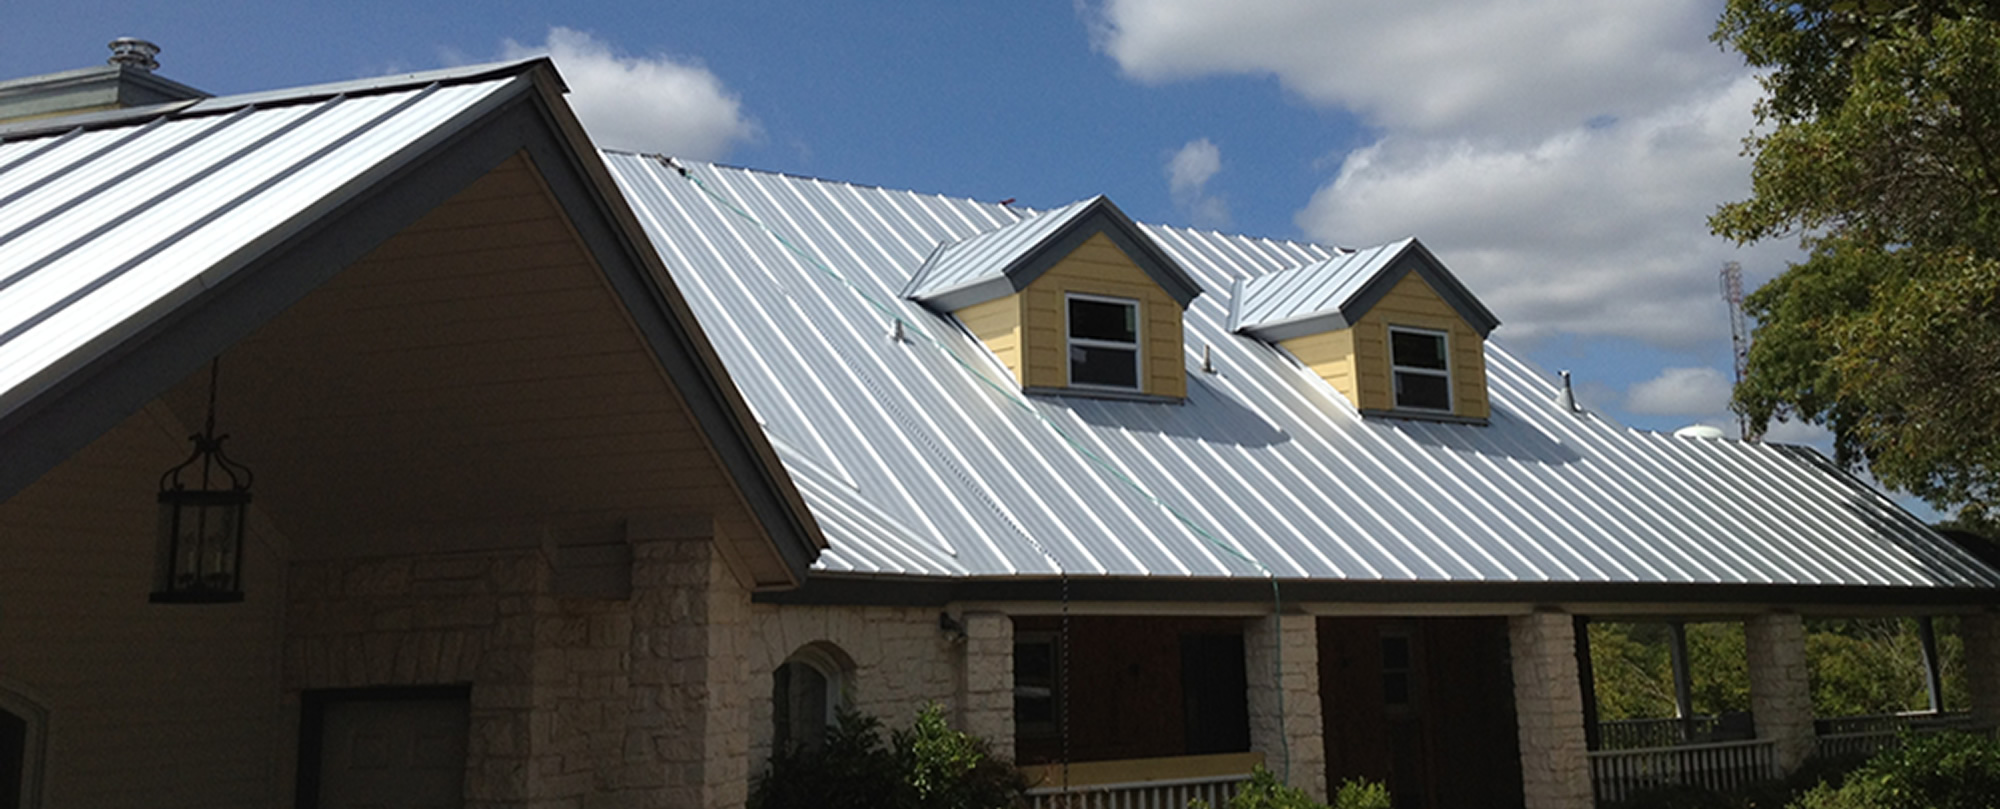 Platinum Roofing Texas Home